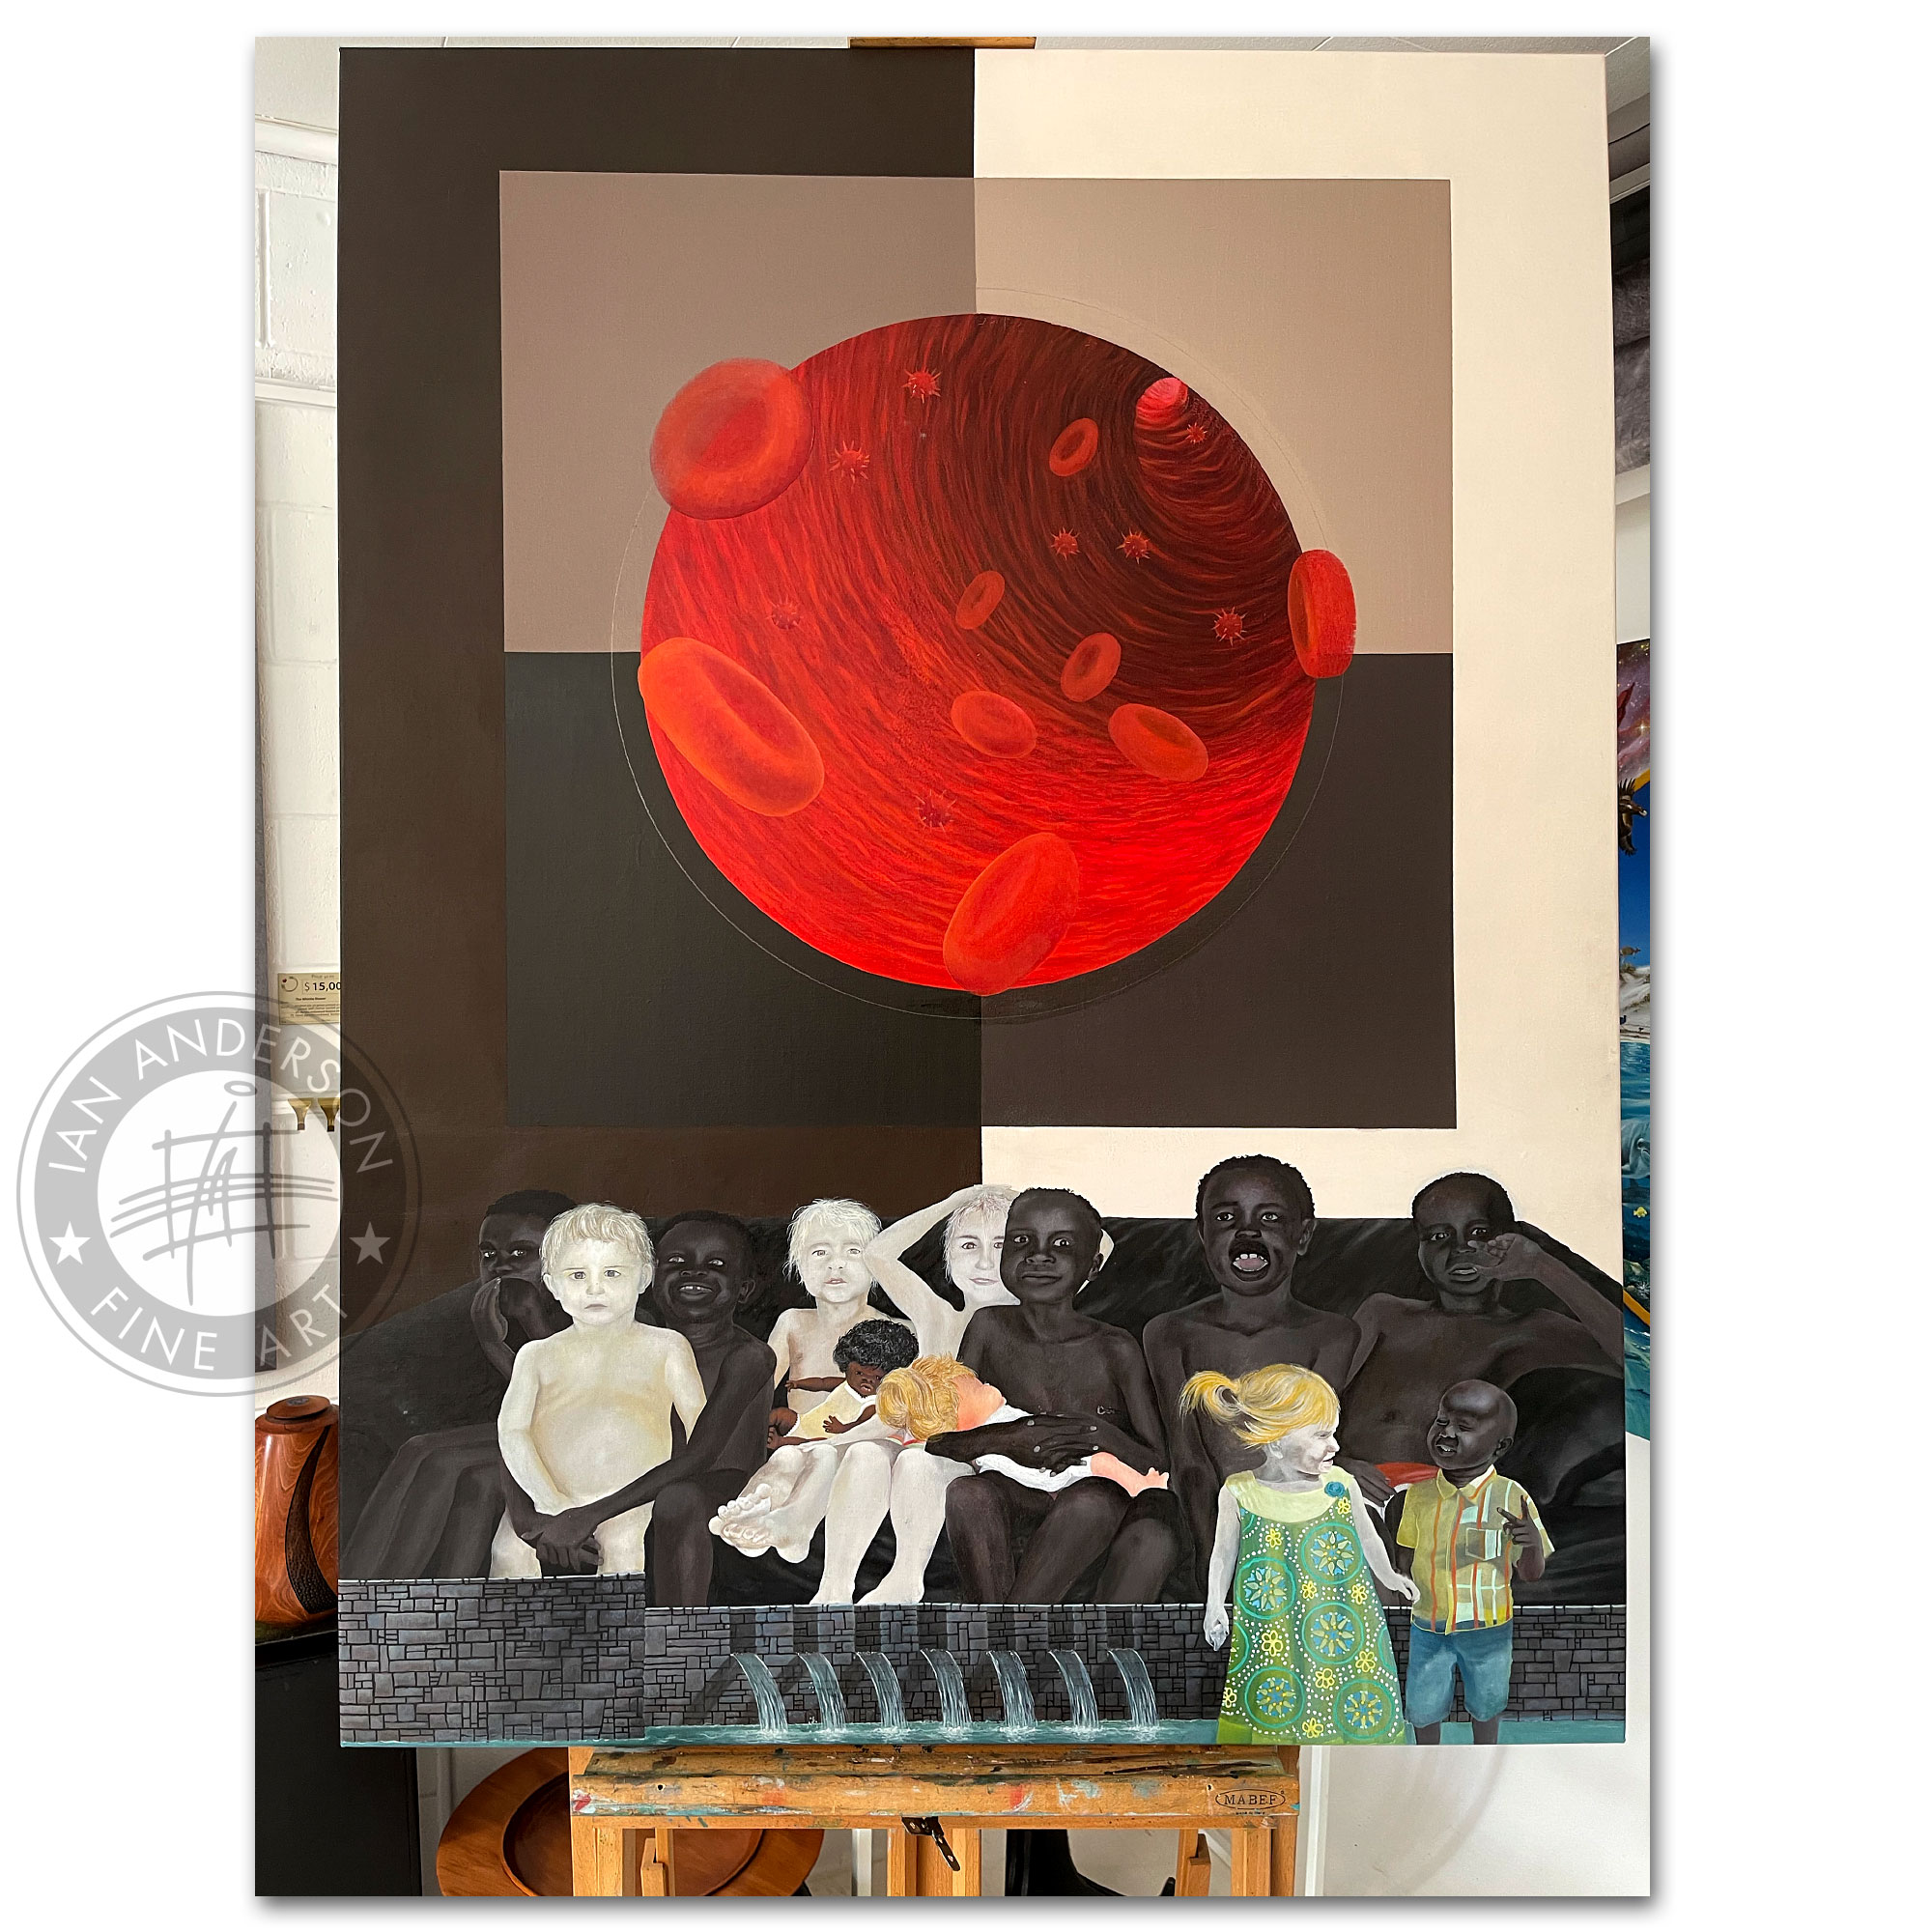 Blood veins peace prejudice The story of love and diversity - A provocative oil painting on ethnic diversity 9